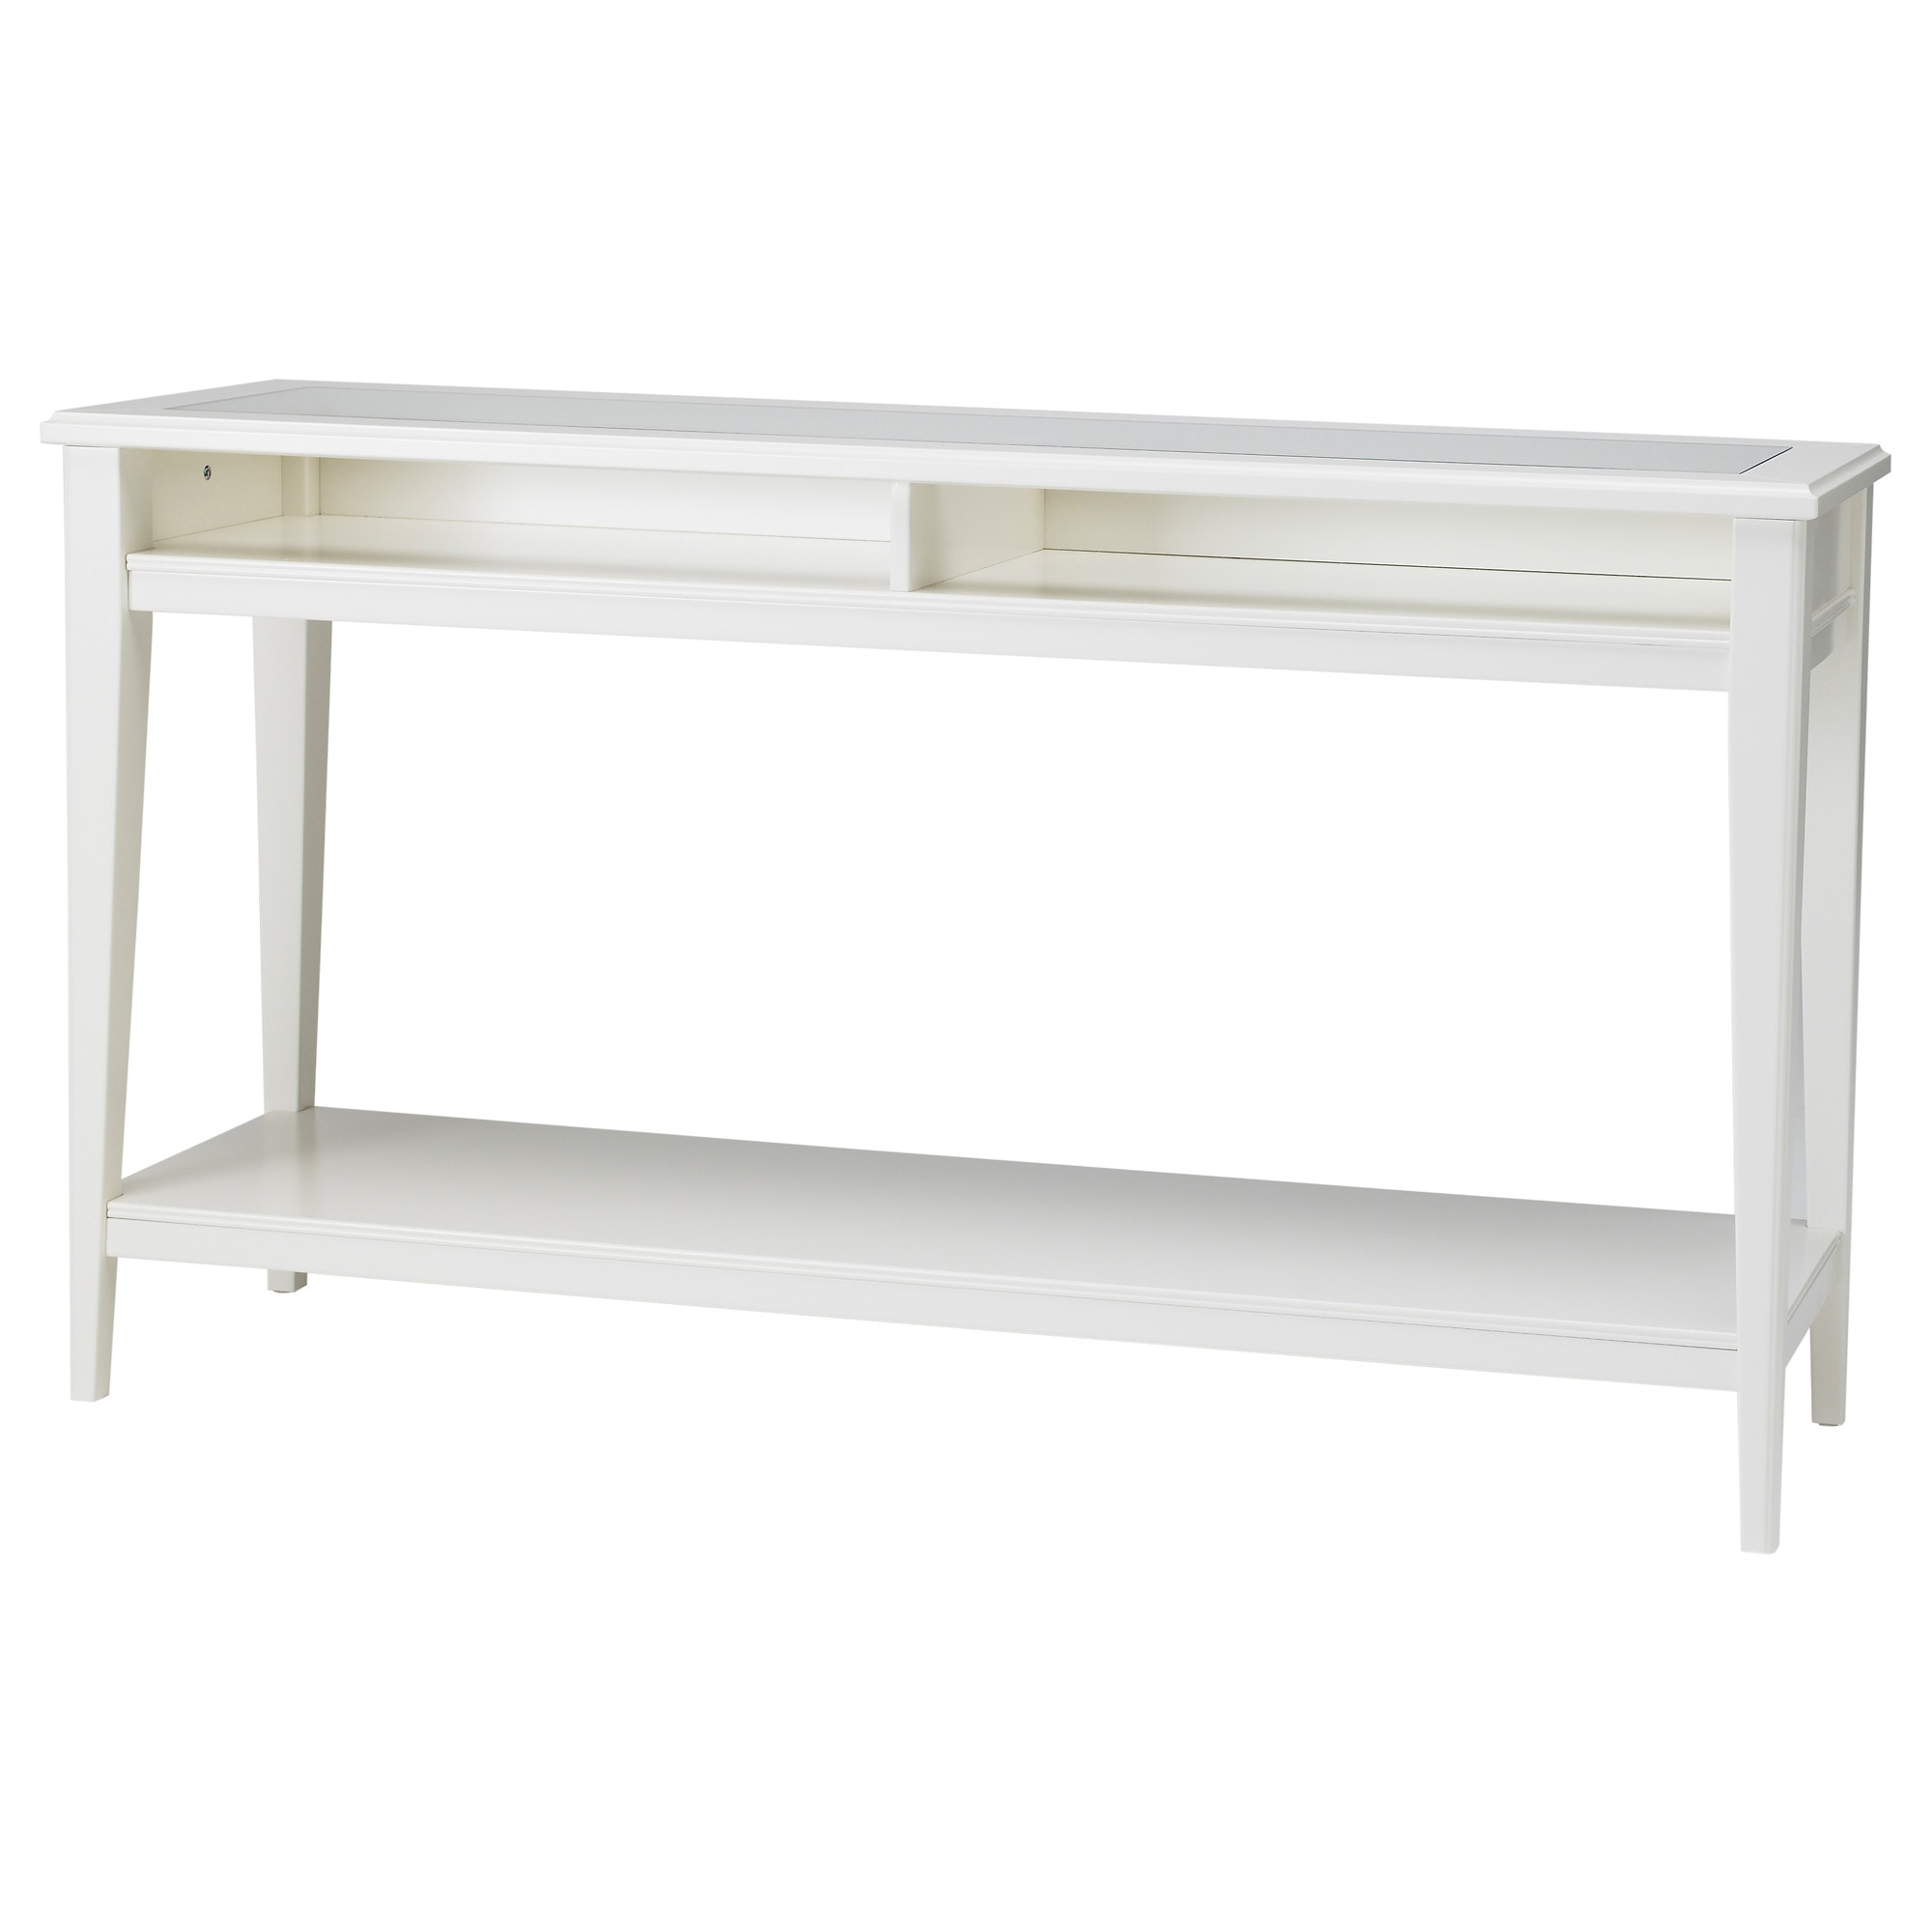 Wonderful LIATORP Console Table   White/glass   IKEA